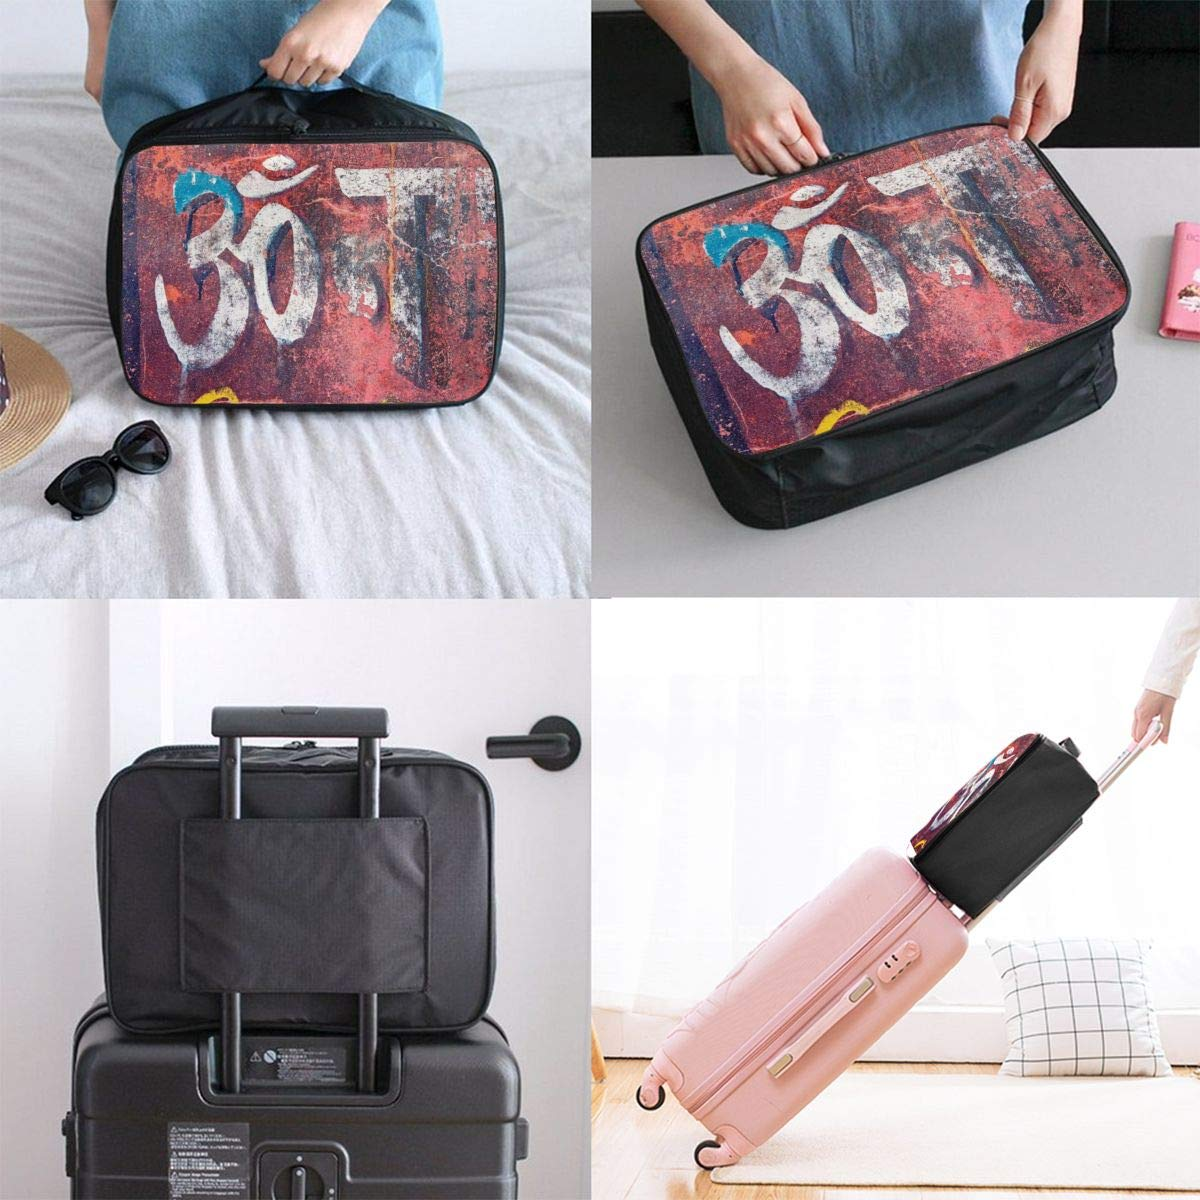 Vintage Red Graffiti Murals Travel Lightweight Waterproof Folding Storage Carry Luggage Duffle Tote Bag Large Capacity In Trolley Handle Bags 6x11x15 Inch